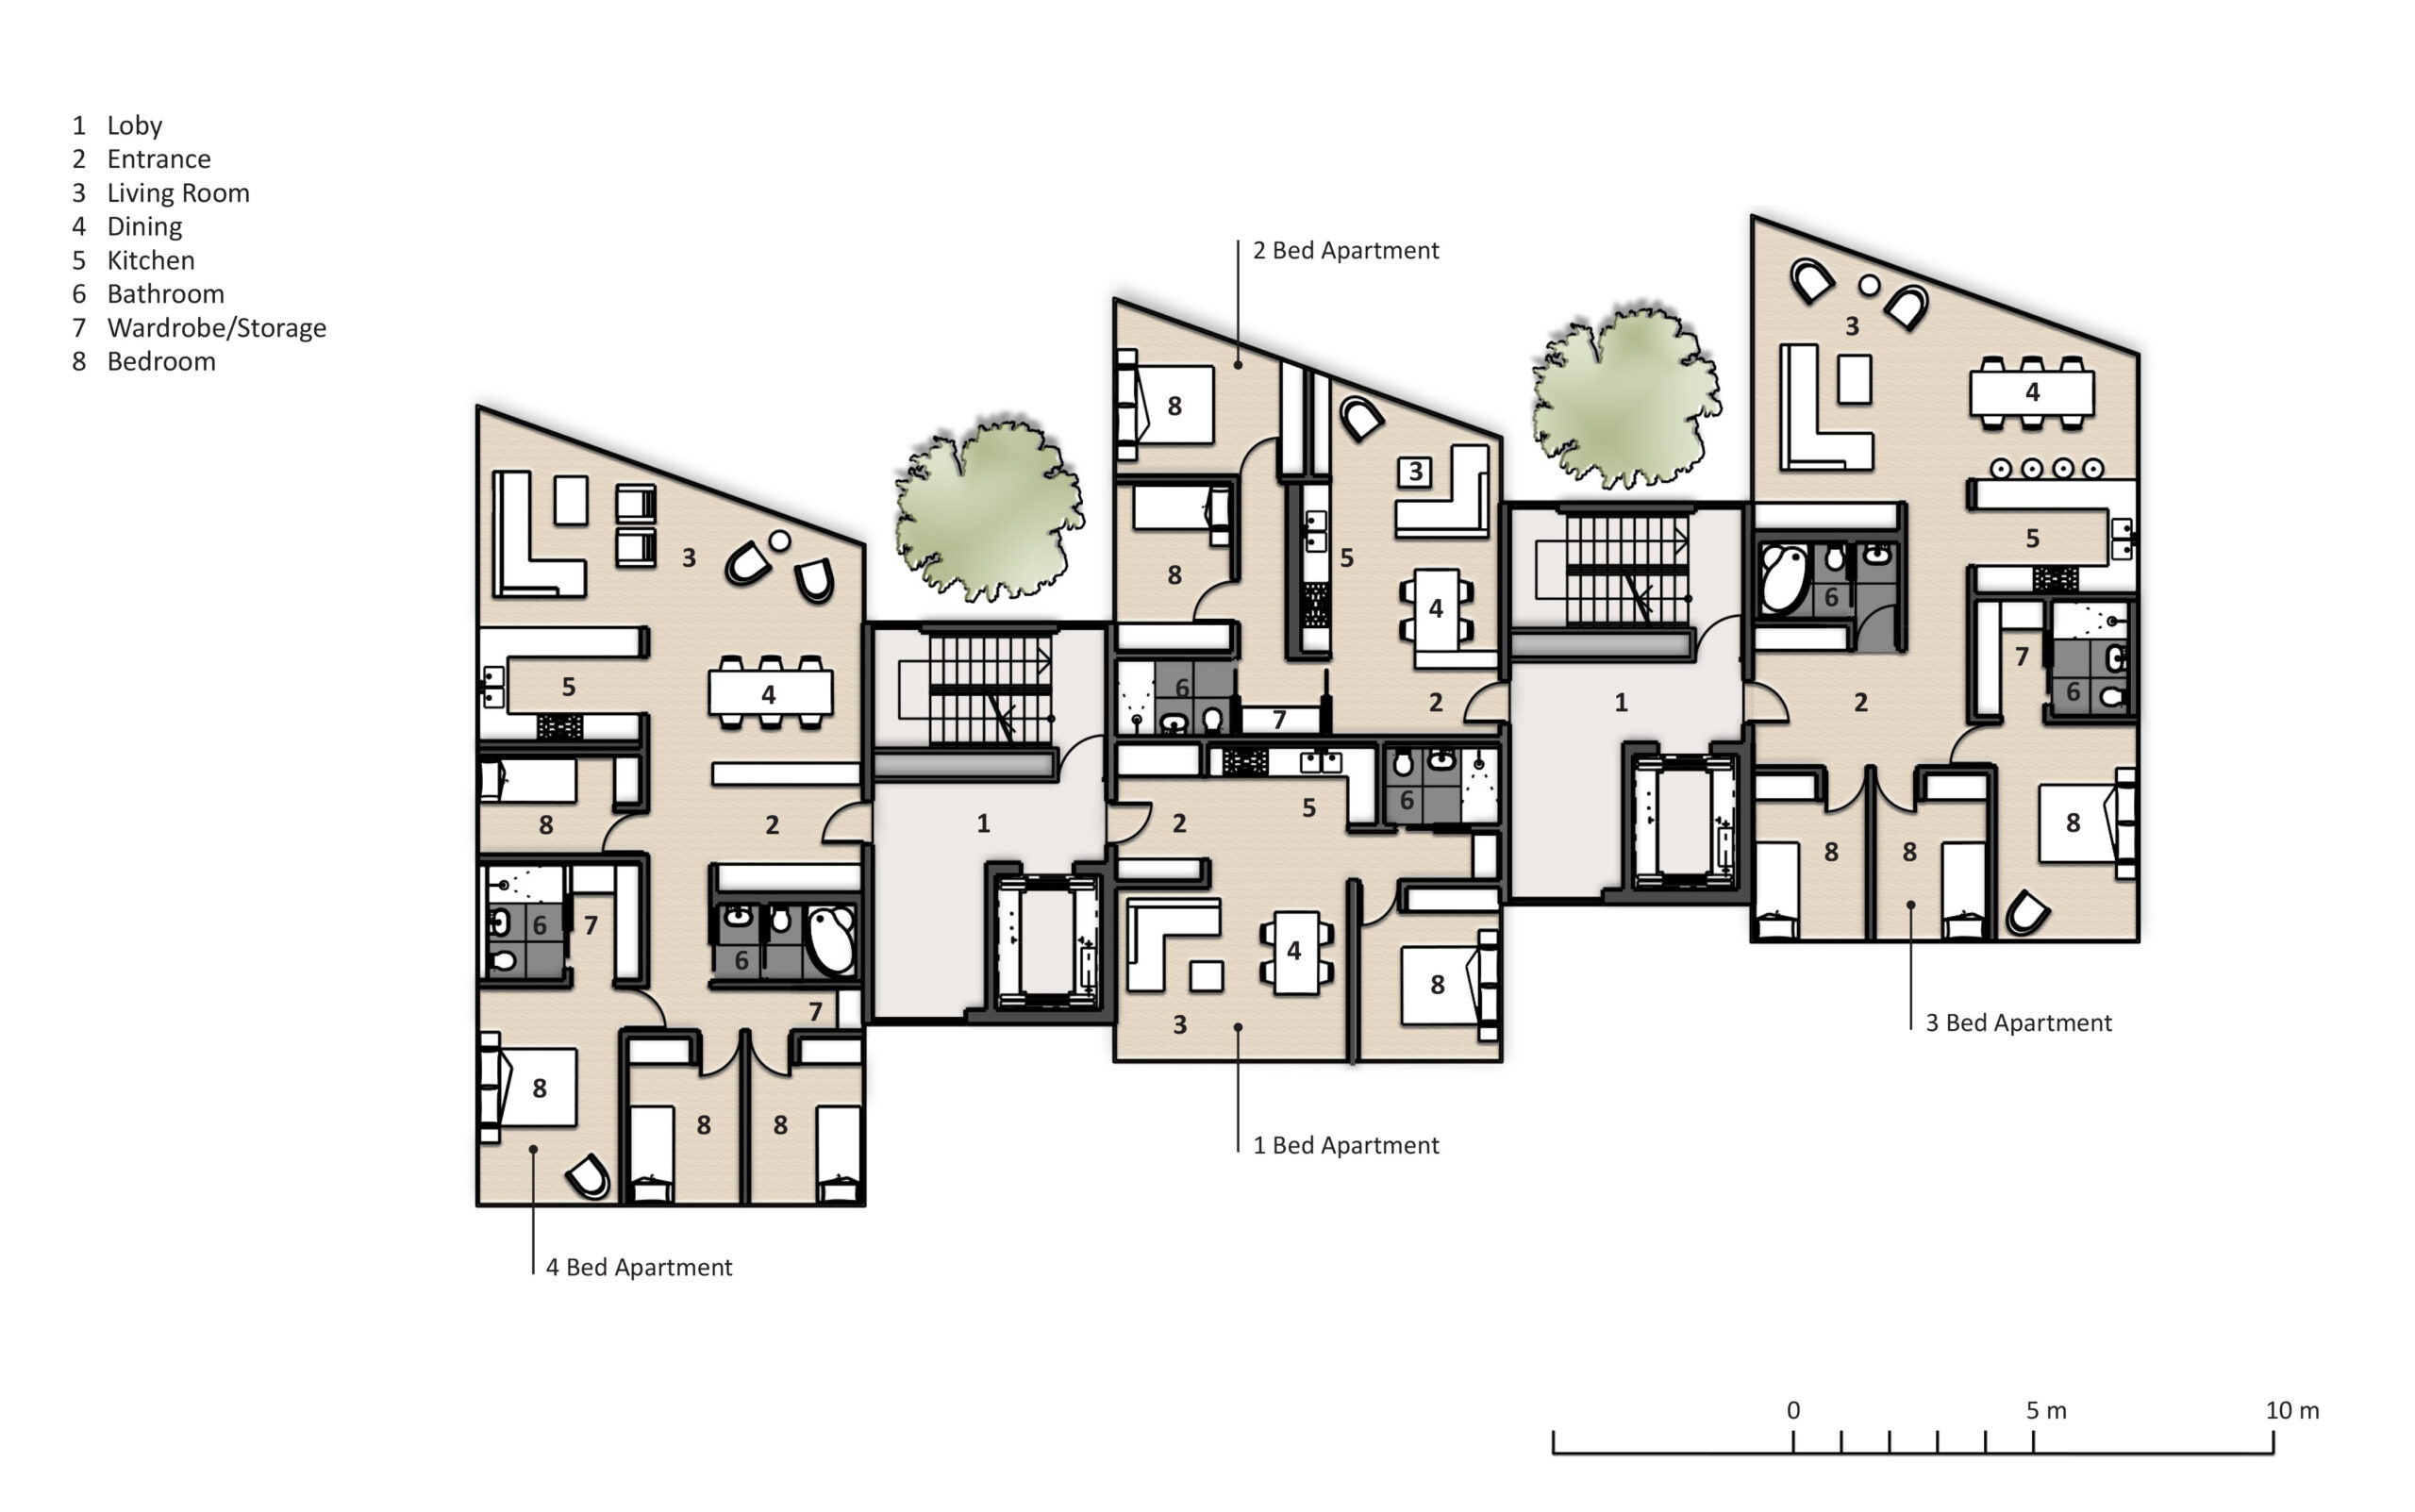 Affordable Housing New build flats